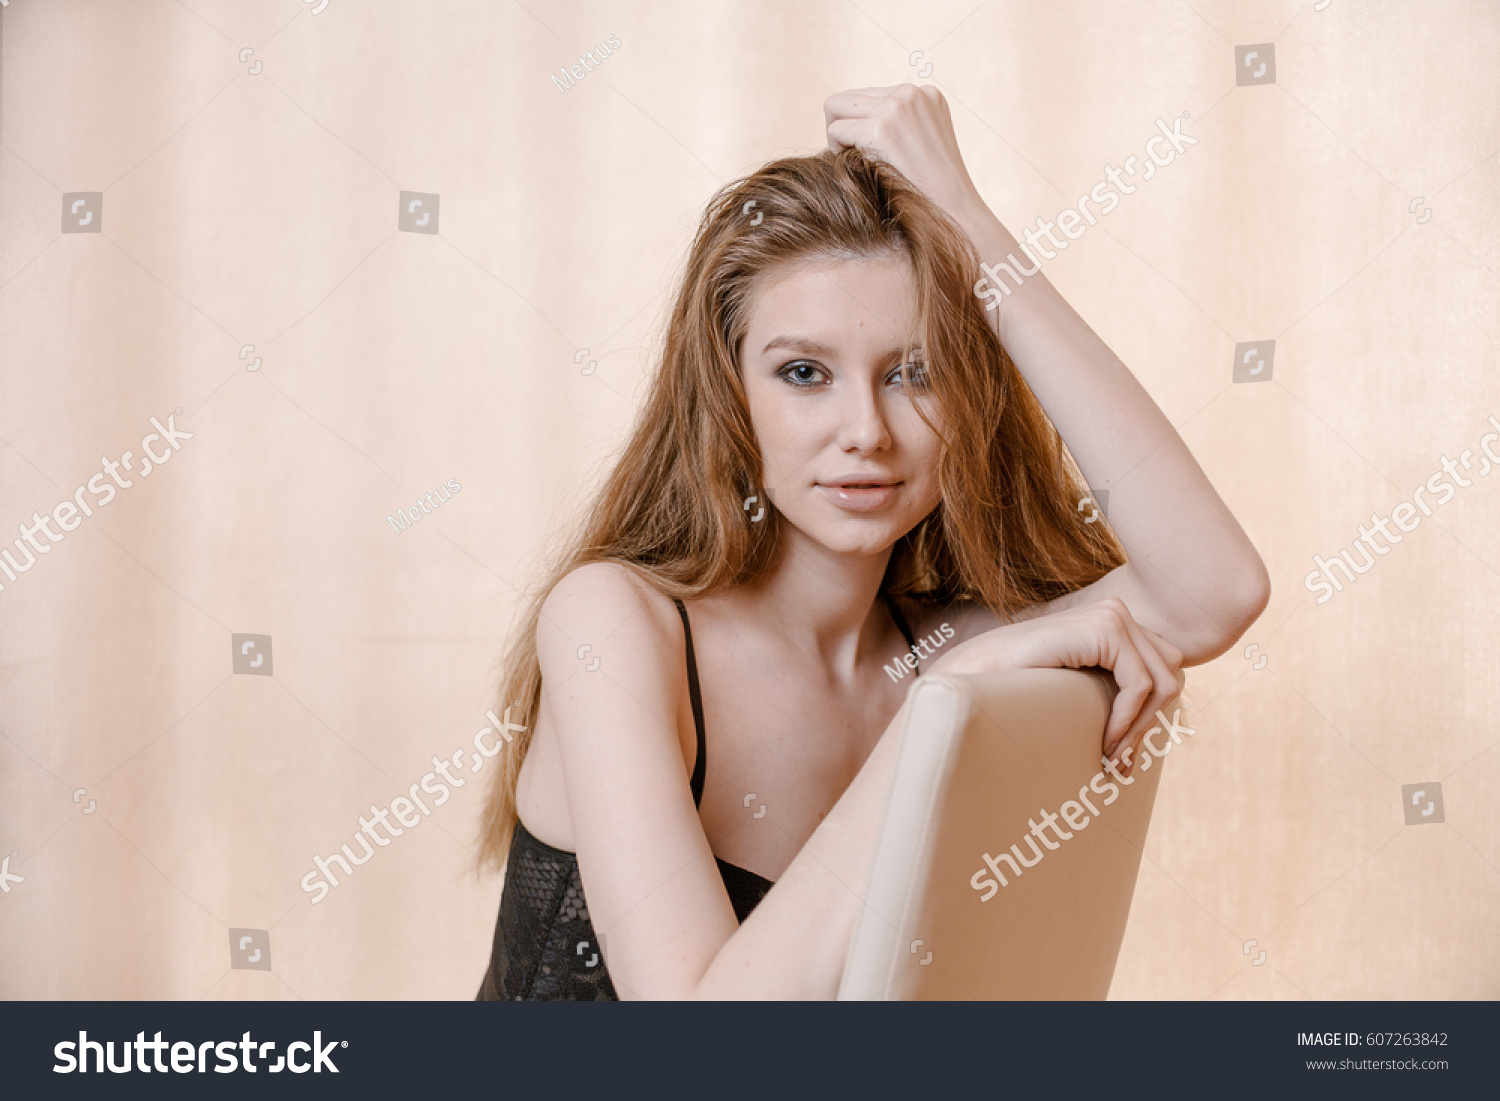 Blond haired woman in pensive state posing on chair with copyspace.